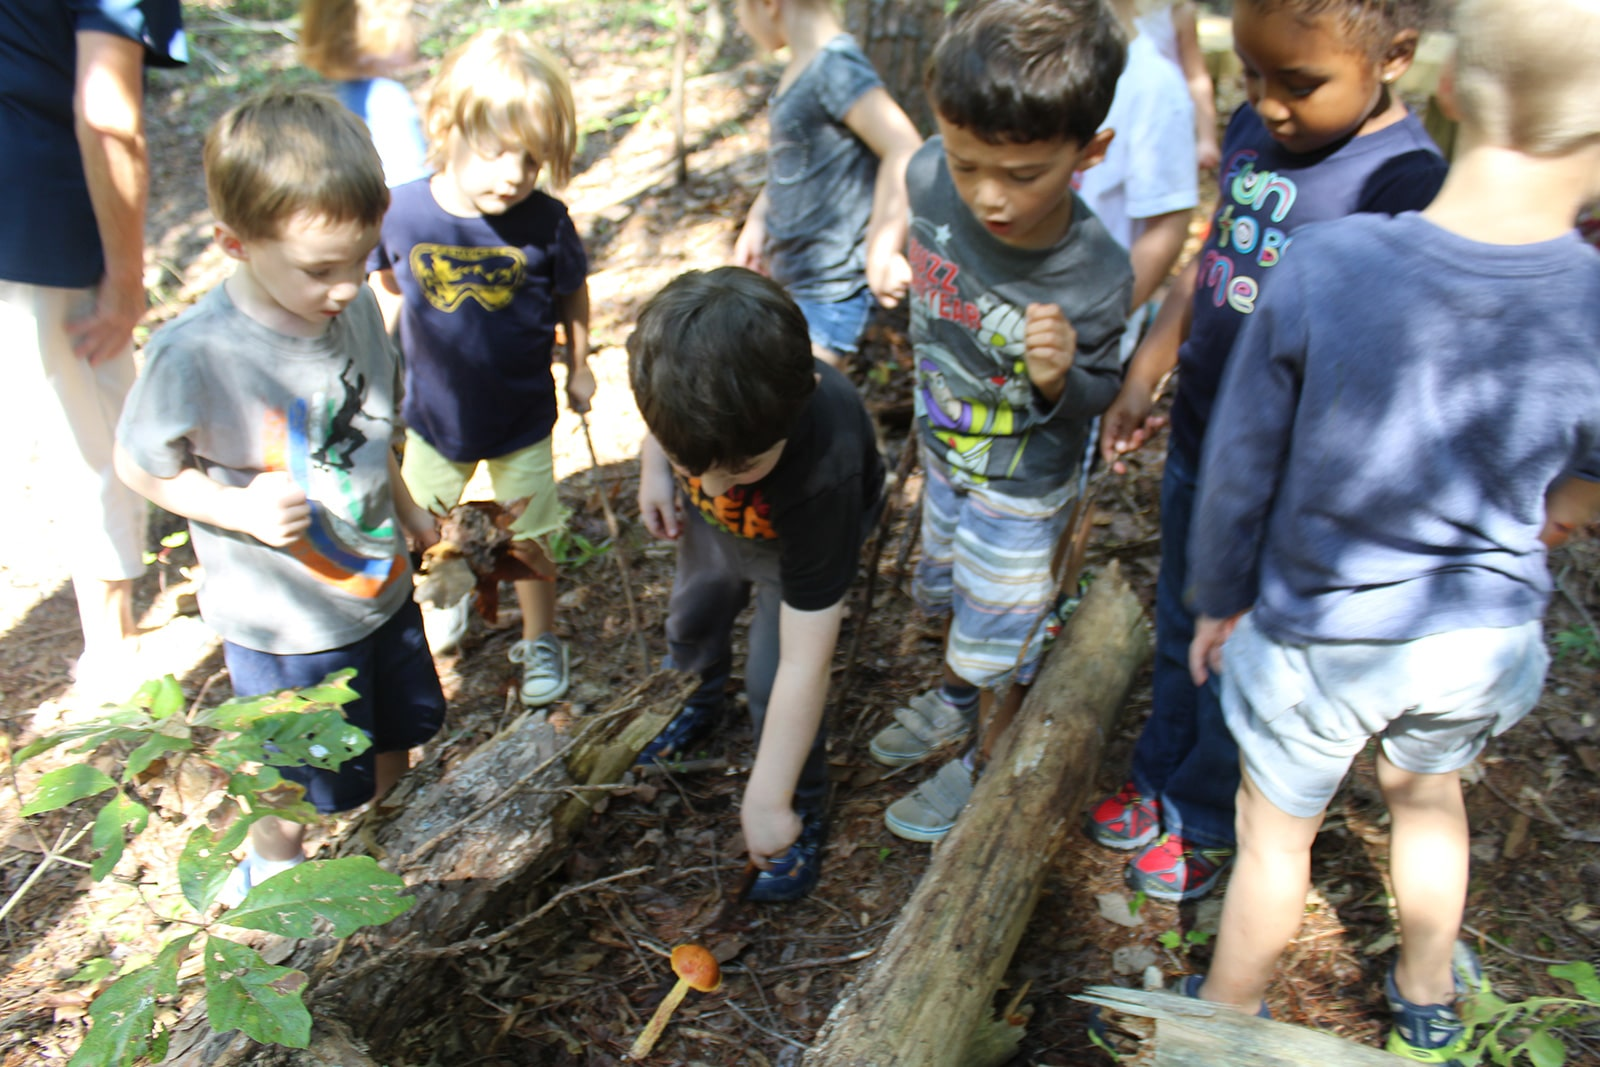 Kids exploring nature at outdoor preschool